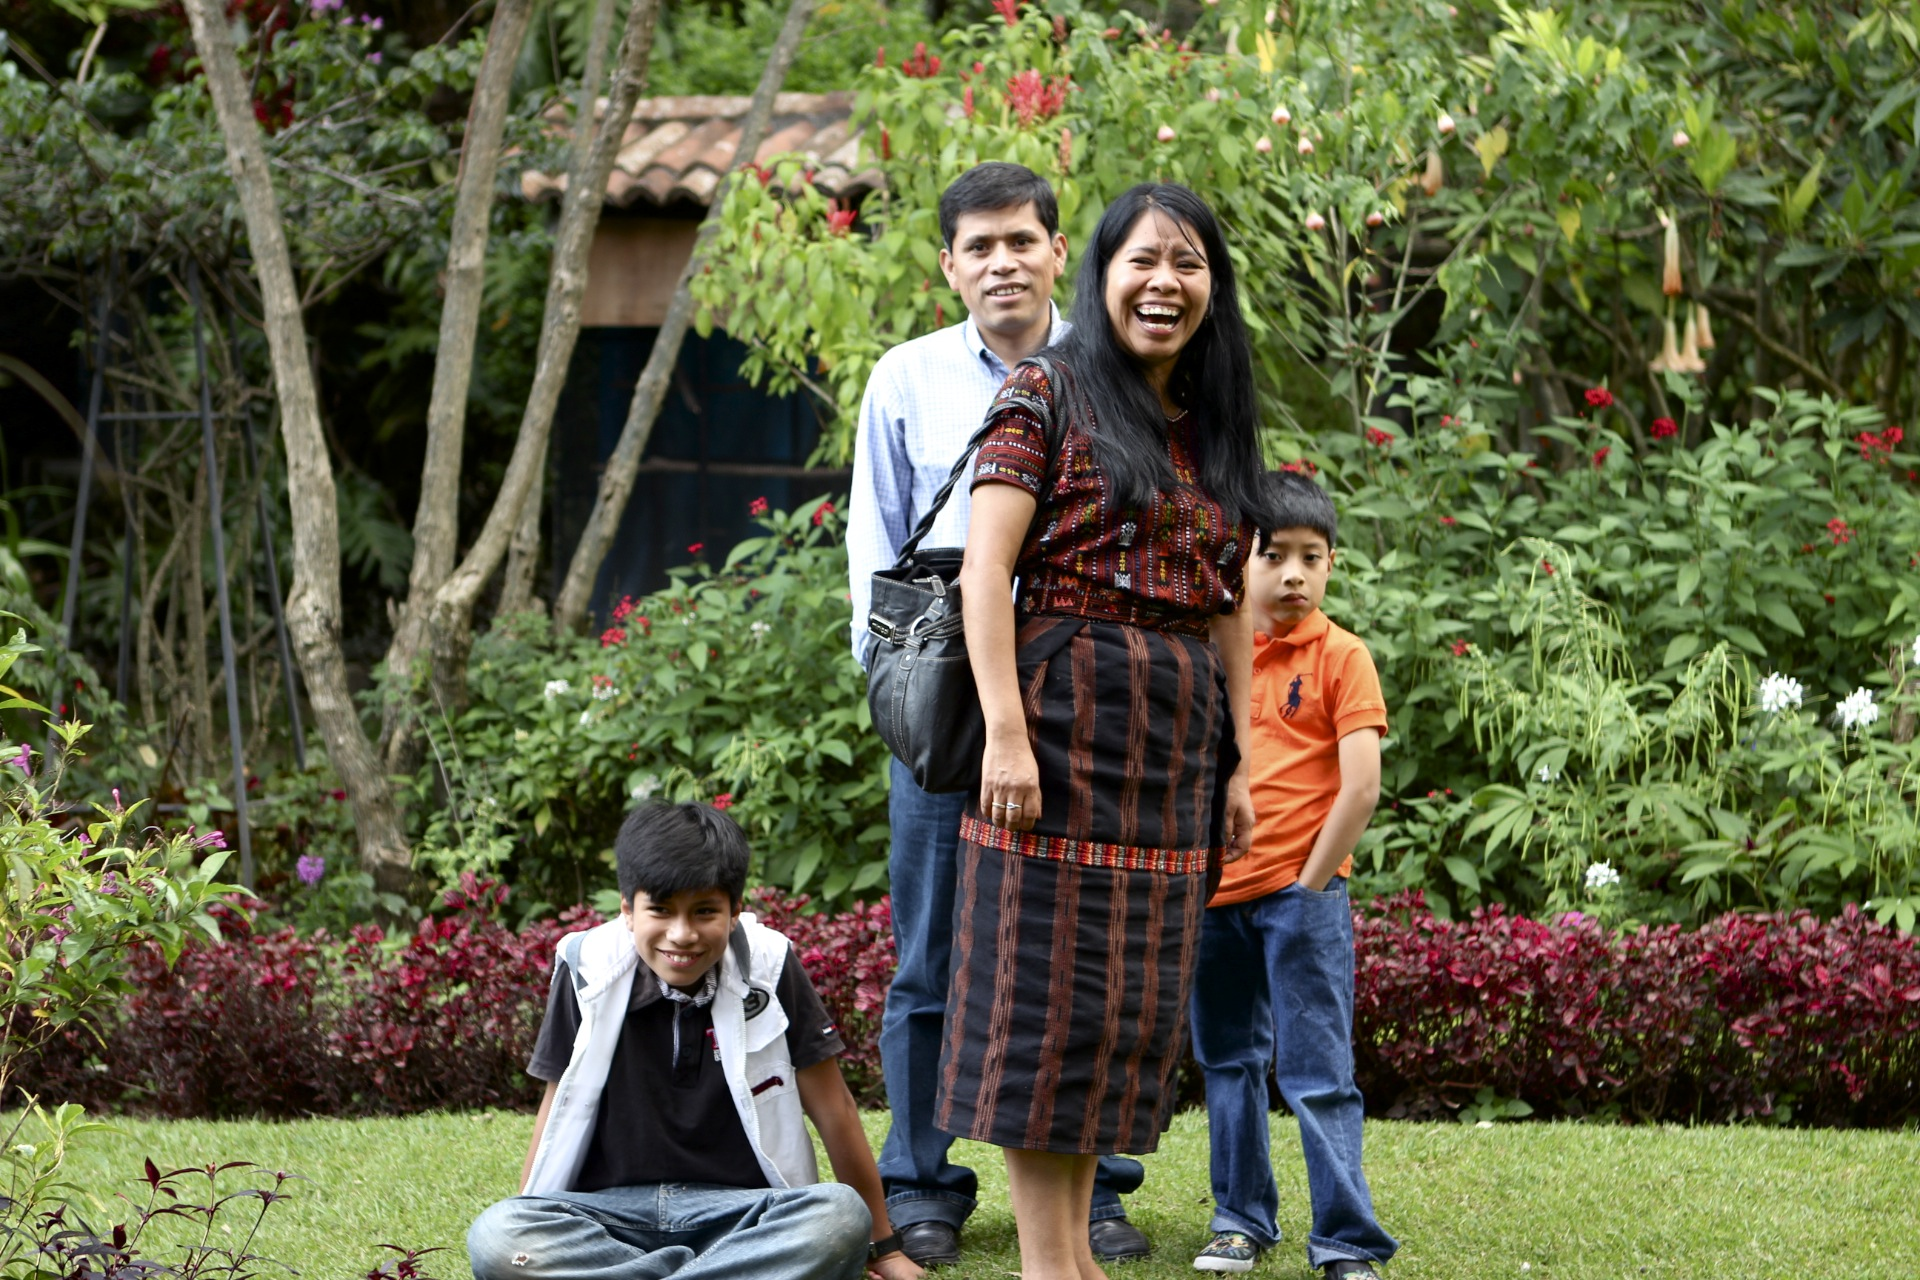 Candelaria and Gregorio have two amazing young sons, Brian and Pablo, who are learning what it means to live a sacrificial, unselfish, give-it-all-you-have lifestyle. They both attend an American school in Panajachel in English, and Brian is now tutoring English for some of the scholarship students.